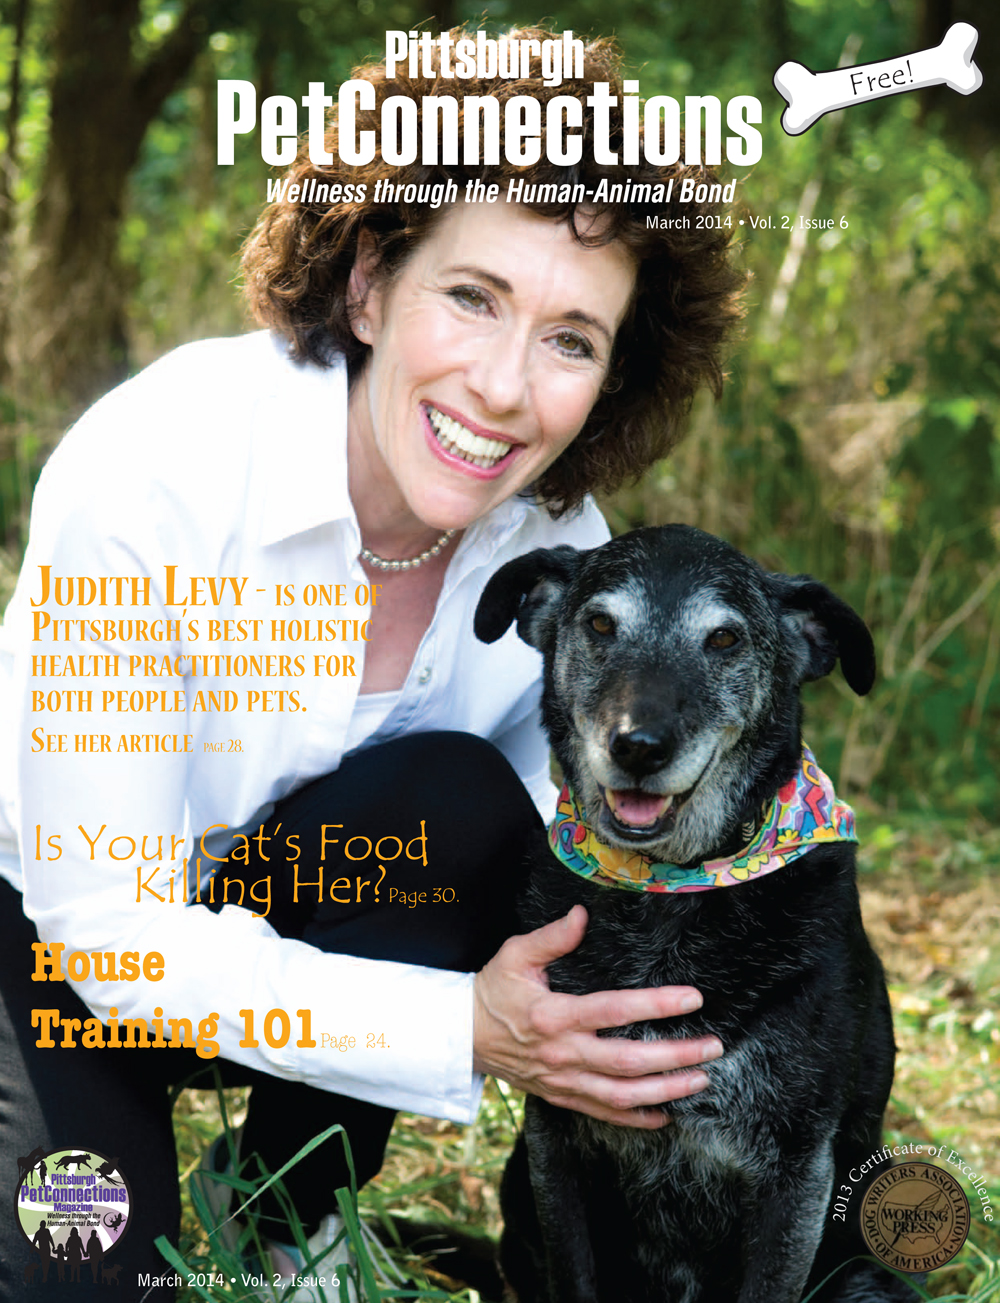 pittsburgh petconnections magazine